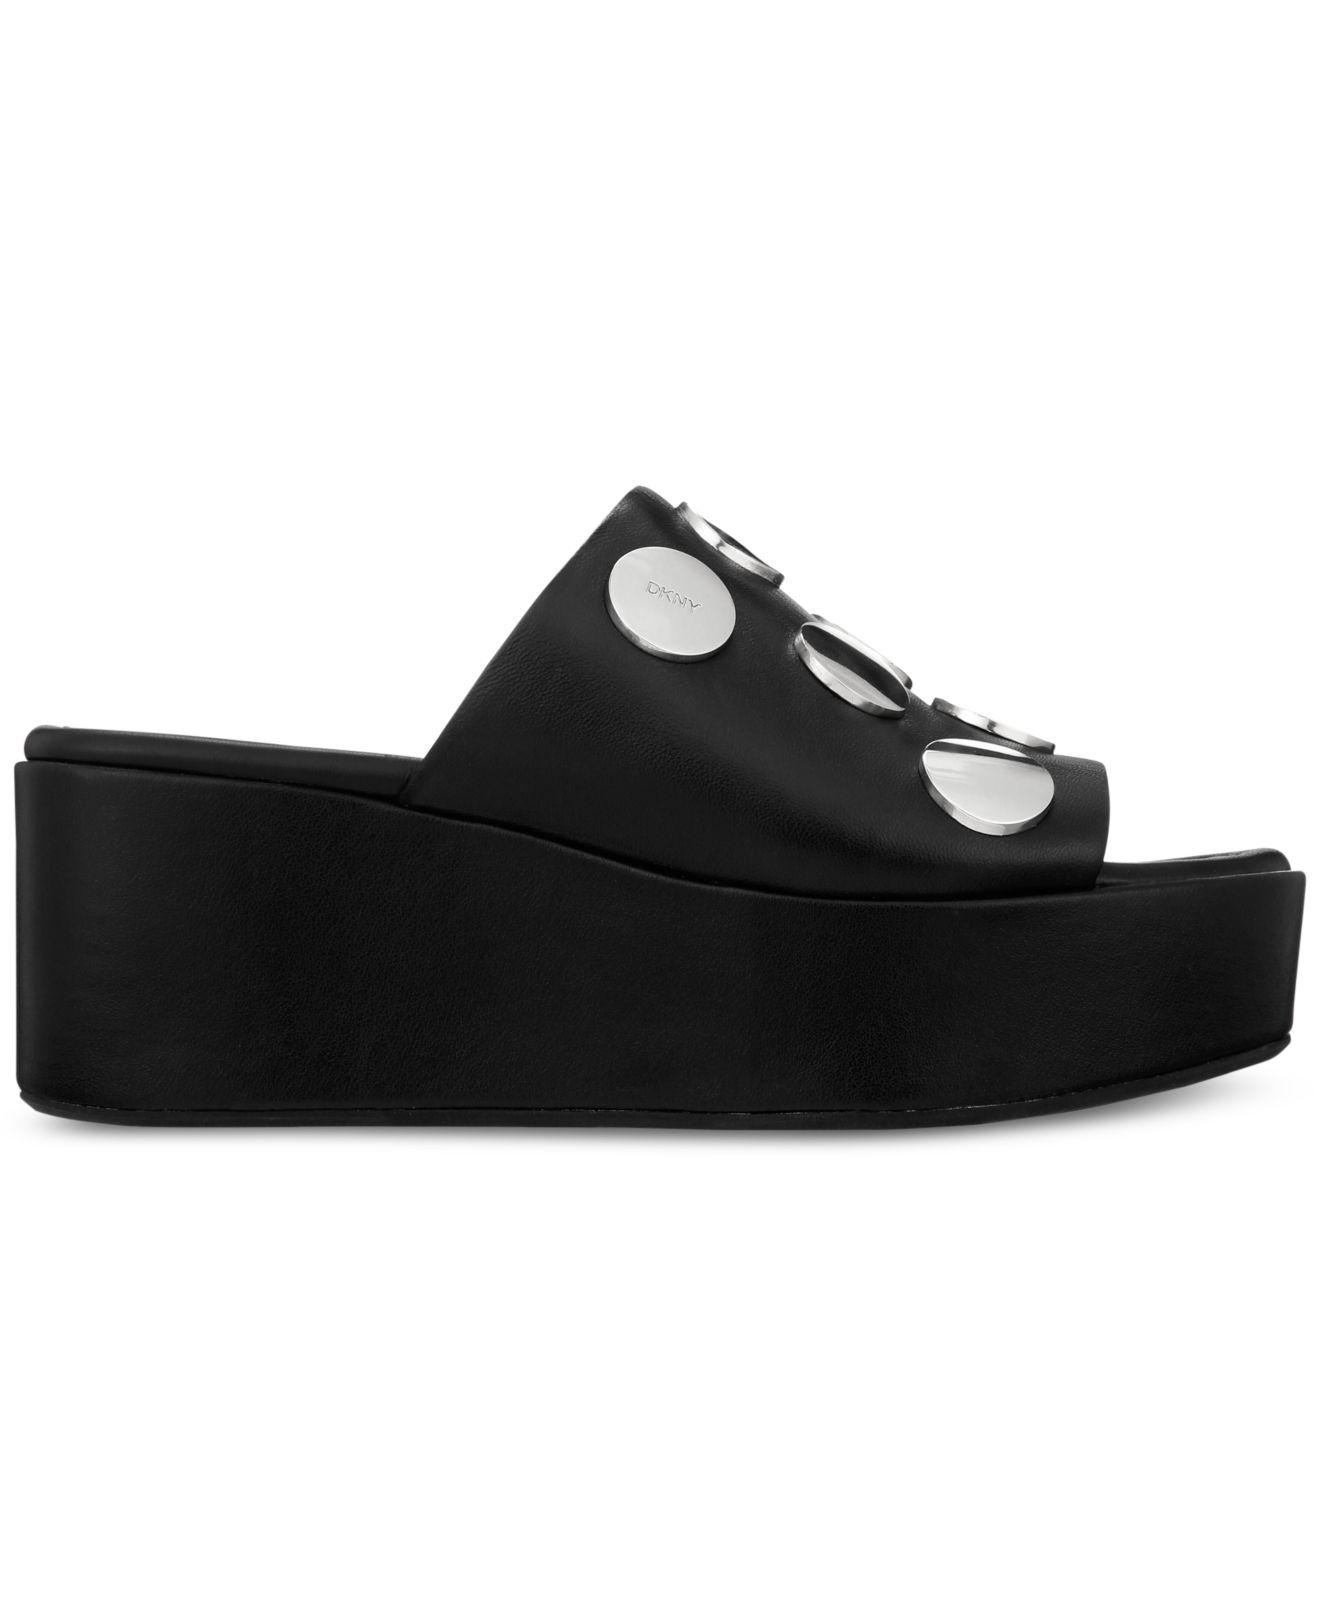 07d6b1d8a5 DKNY Catrina2 Wedge Sandals, Created For Macy's in Black - Lyst